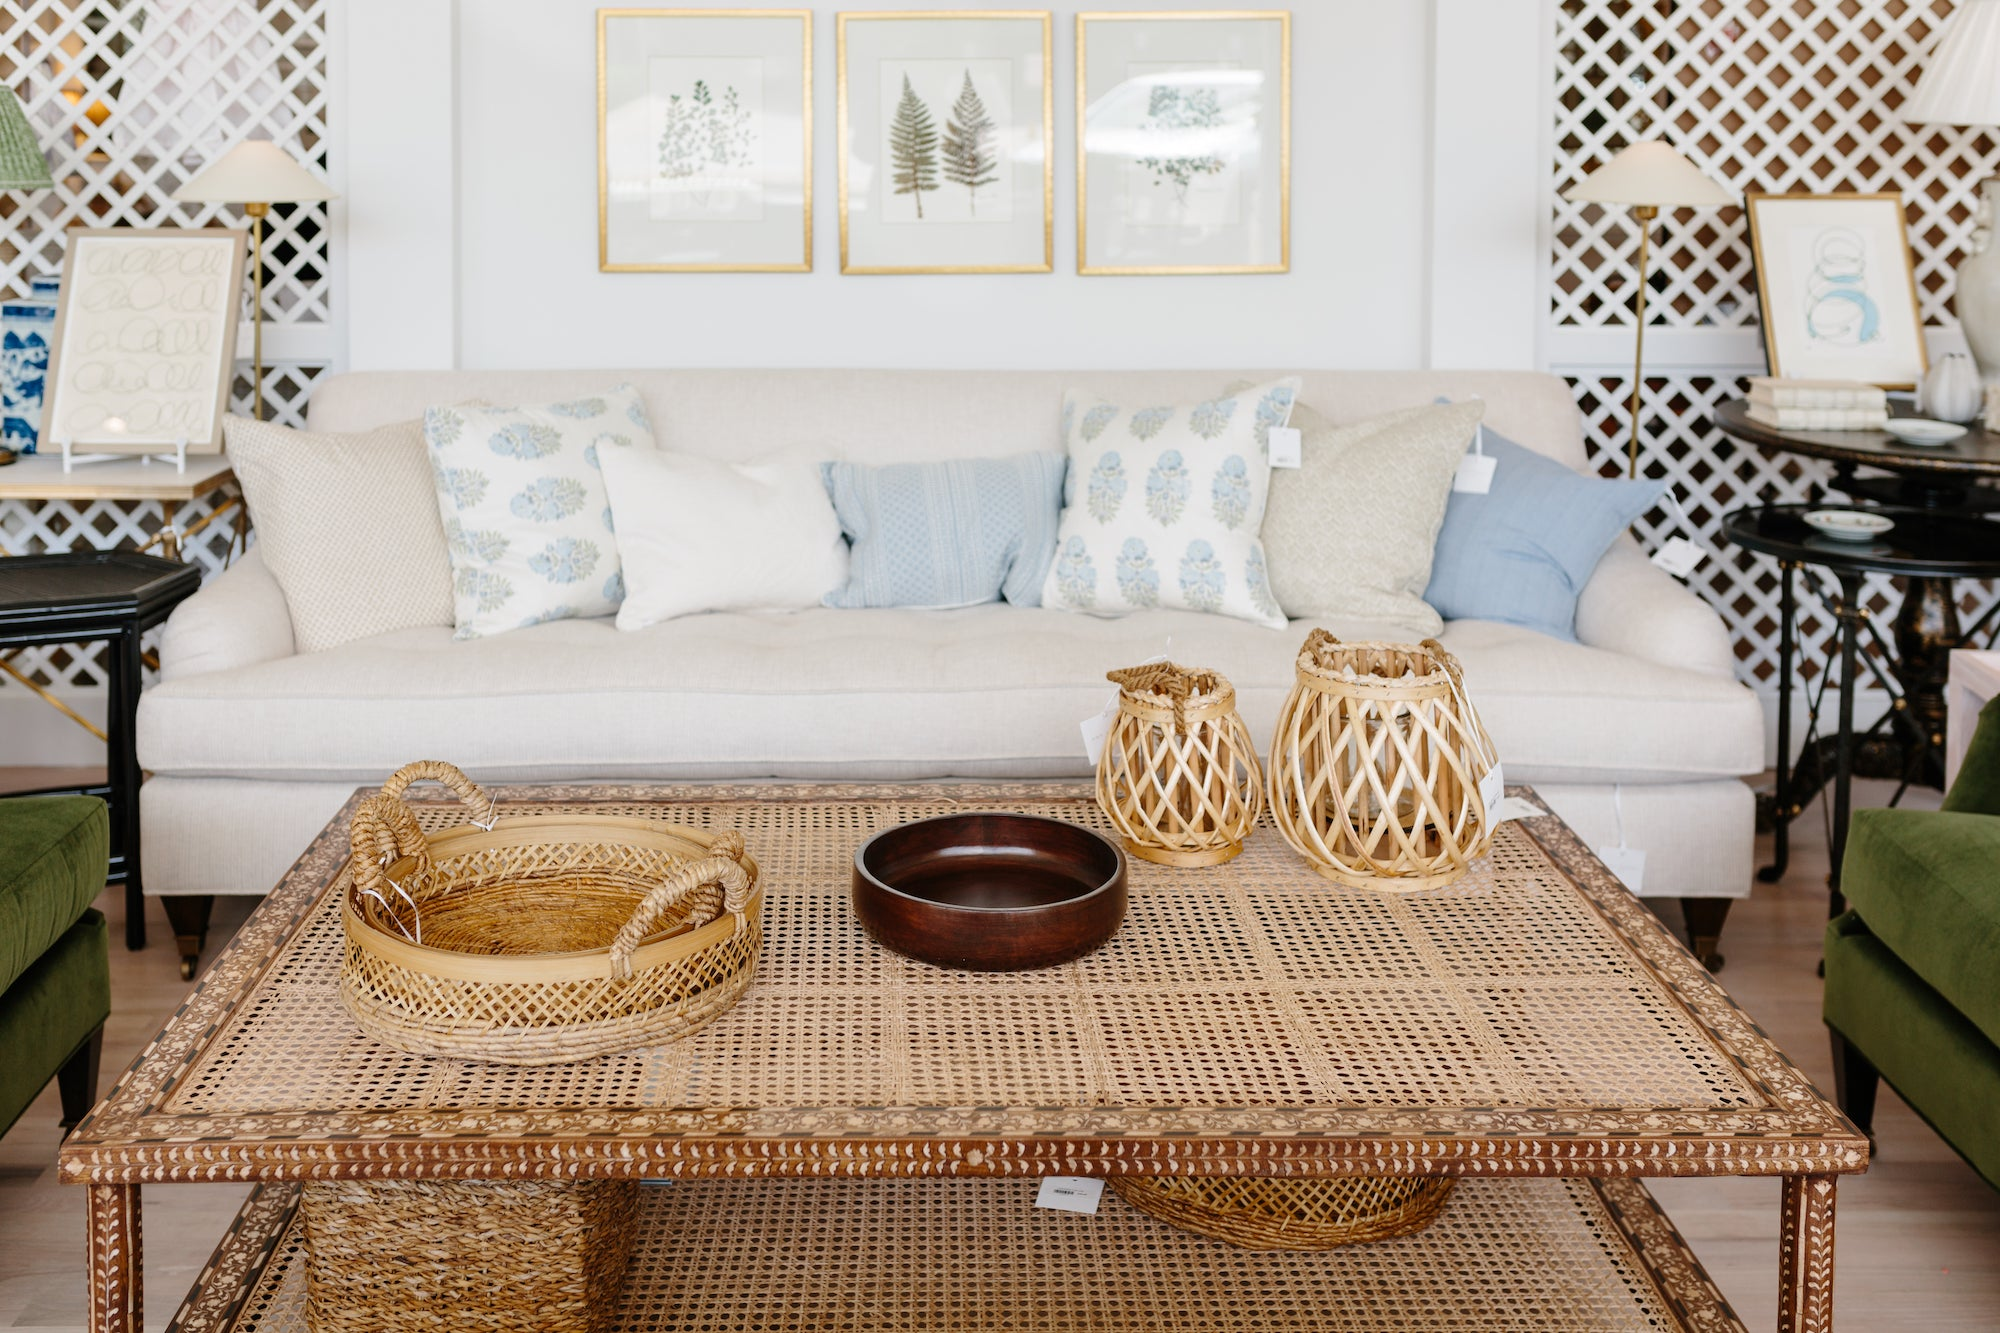 Wood Cane Coffee Table - Amy Berry Home